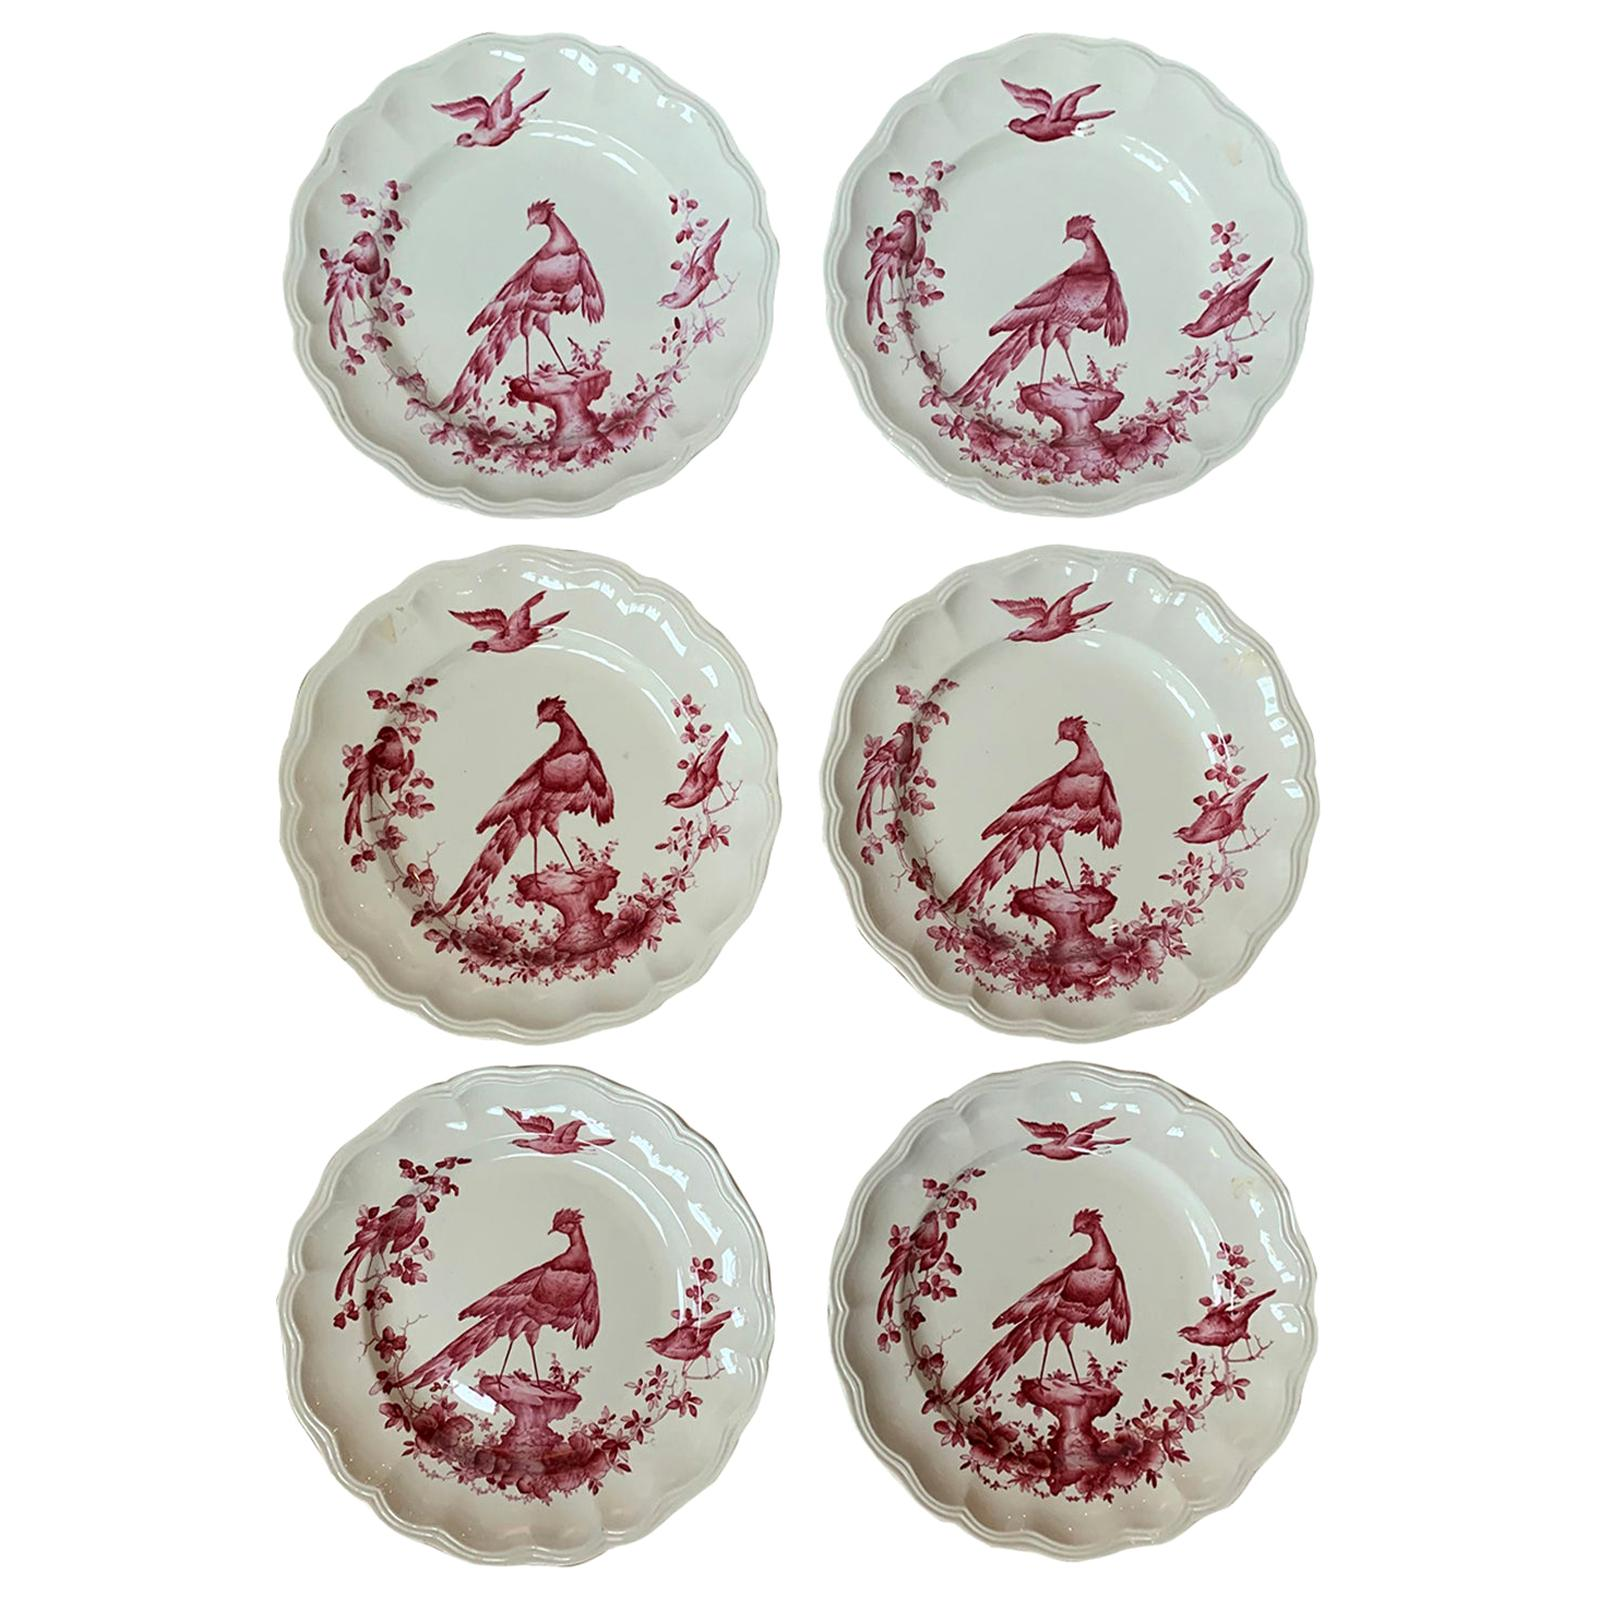 Set of Six English Copeland Spode Chelsea Bird Pattern Dinner Plates, Marked